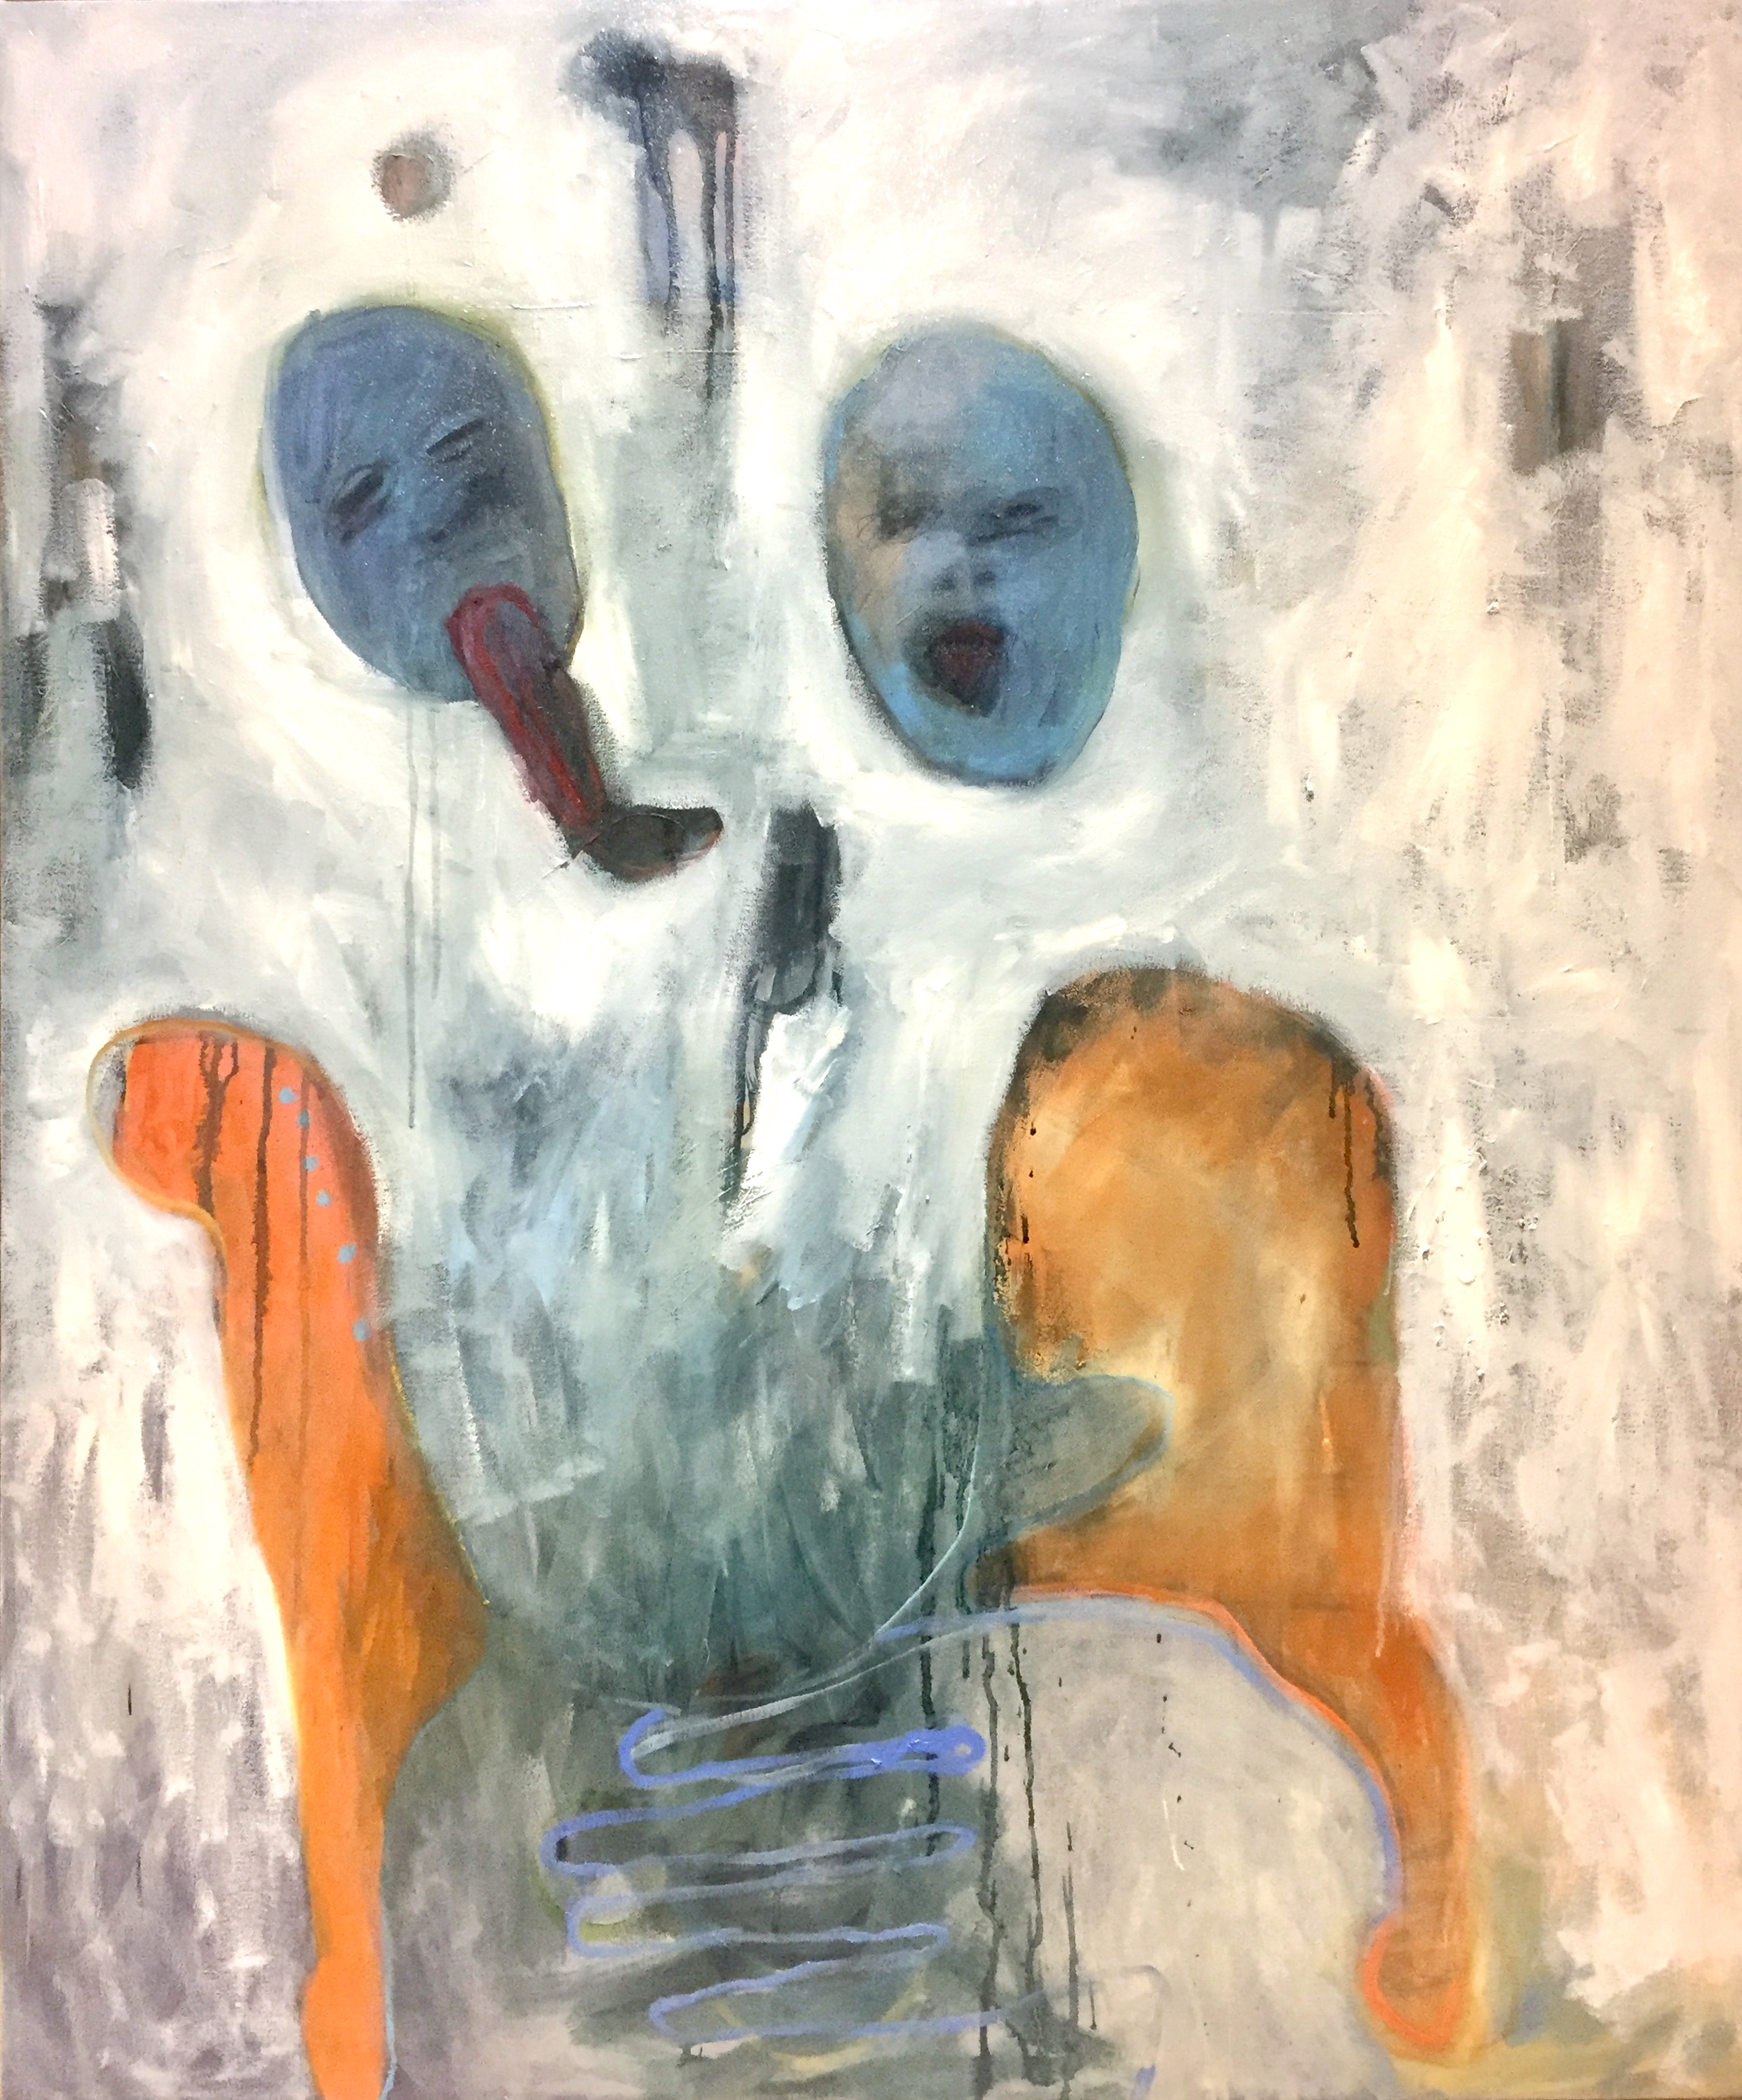 Twin Turmoil   Jo Rogge  Oil on Canvas  1200 x 100 mm  R 15 400.00 excl. vat